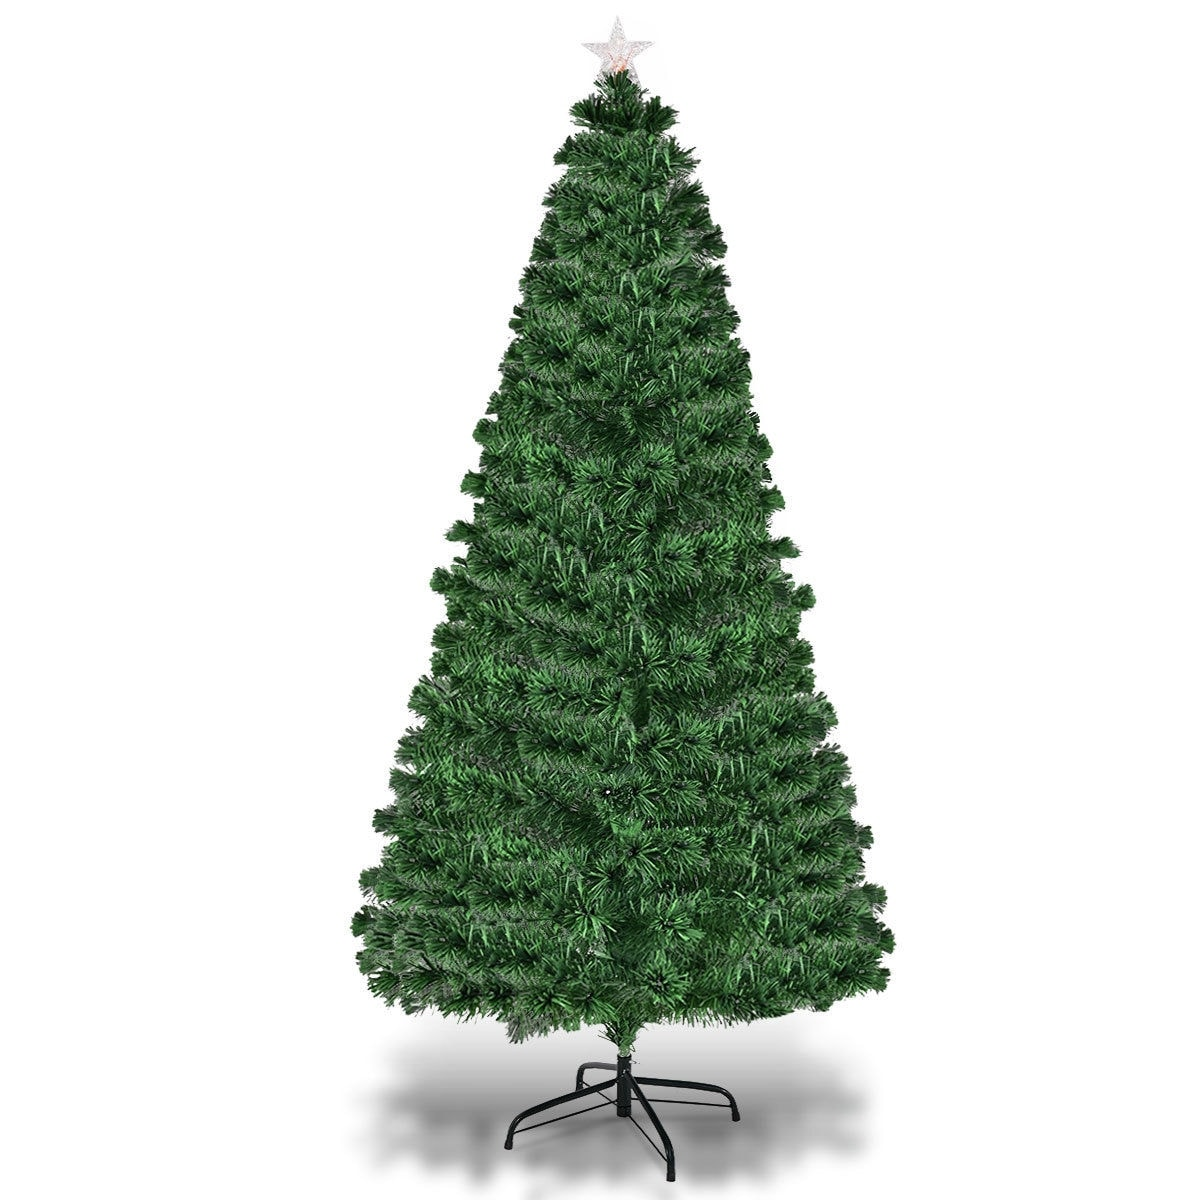 Costway 6ft Fiber Optic Artificial Christmas Tree W 225 Multi Color Led Lights And Stand Green Free Shipping Today 18180852